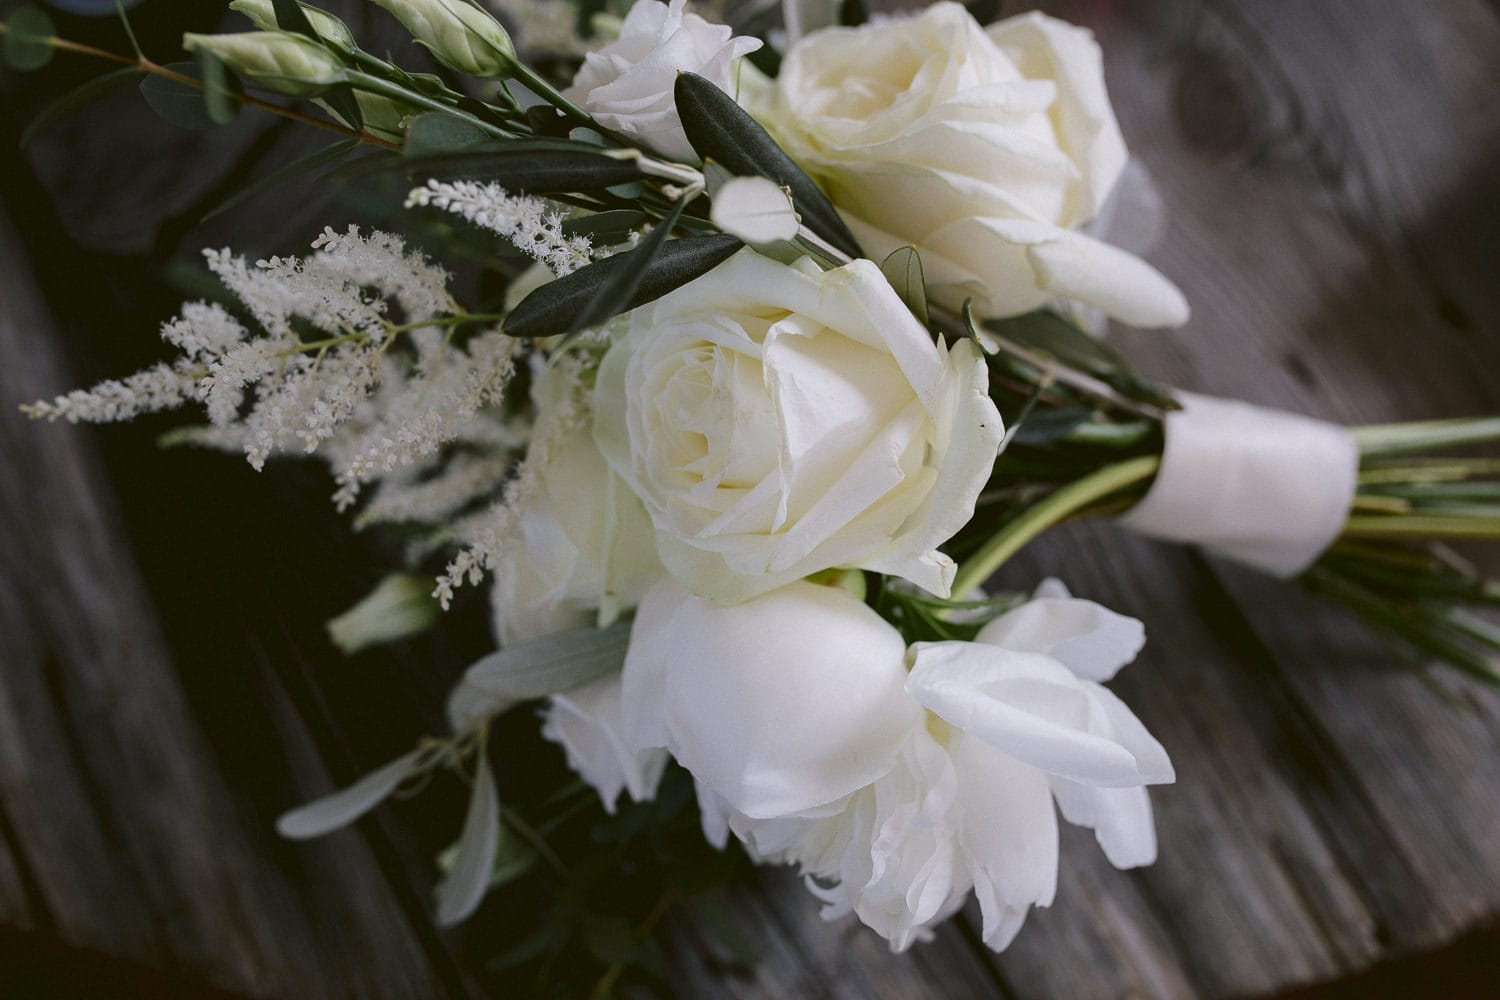 Photograph of Flowers on Table